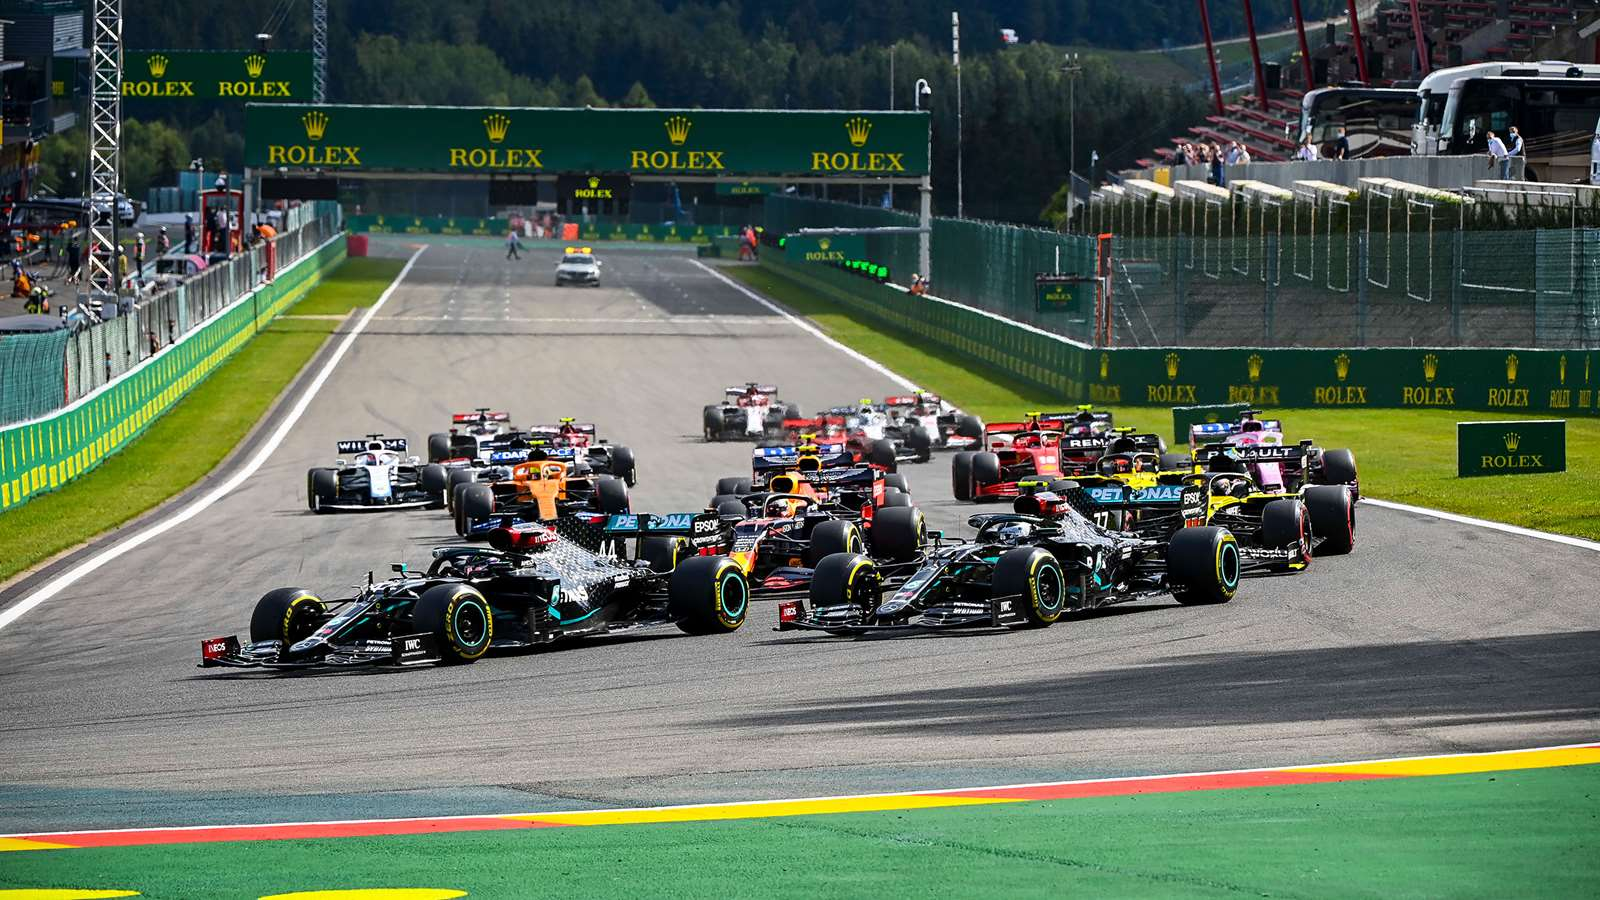 F1 Calendario 2021 Pdf Updated: 2021 F1 Calendar – season confirmed, Interlagos returns | GRR